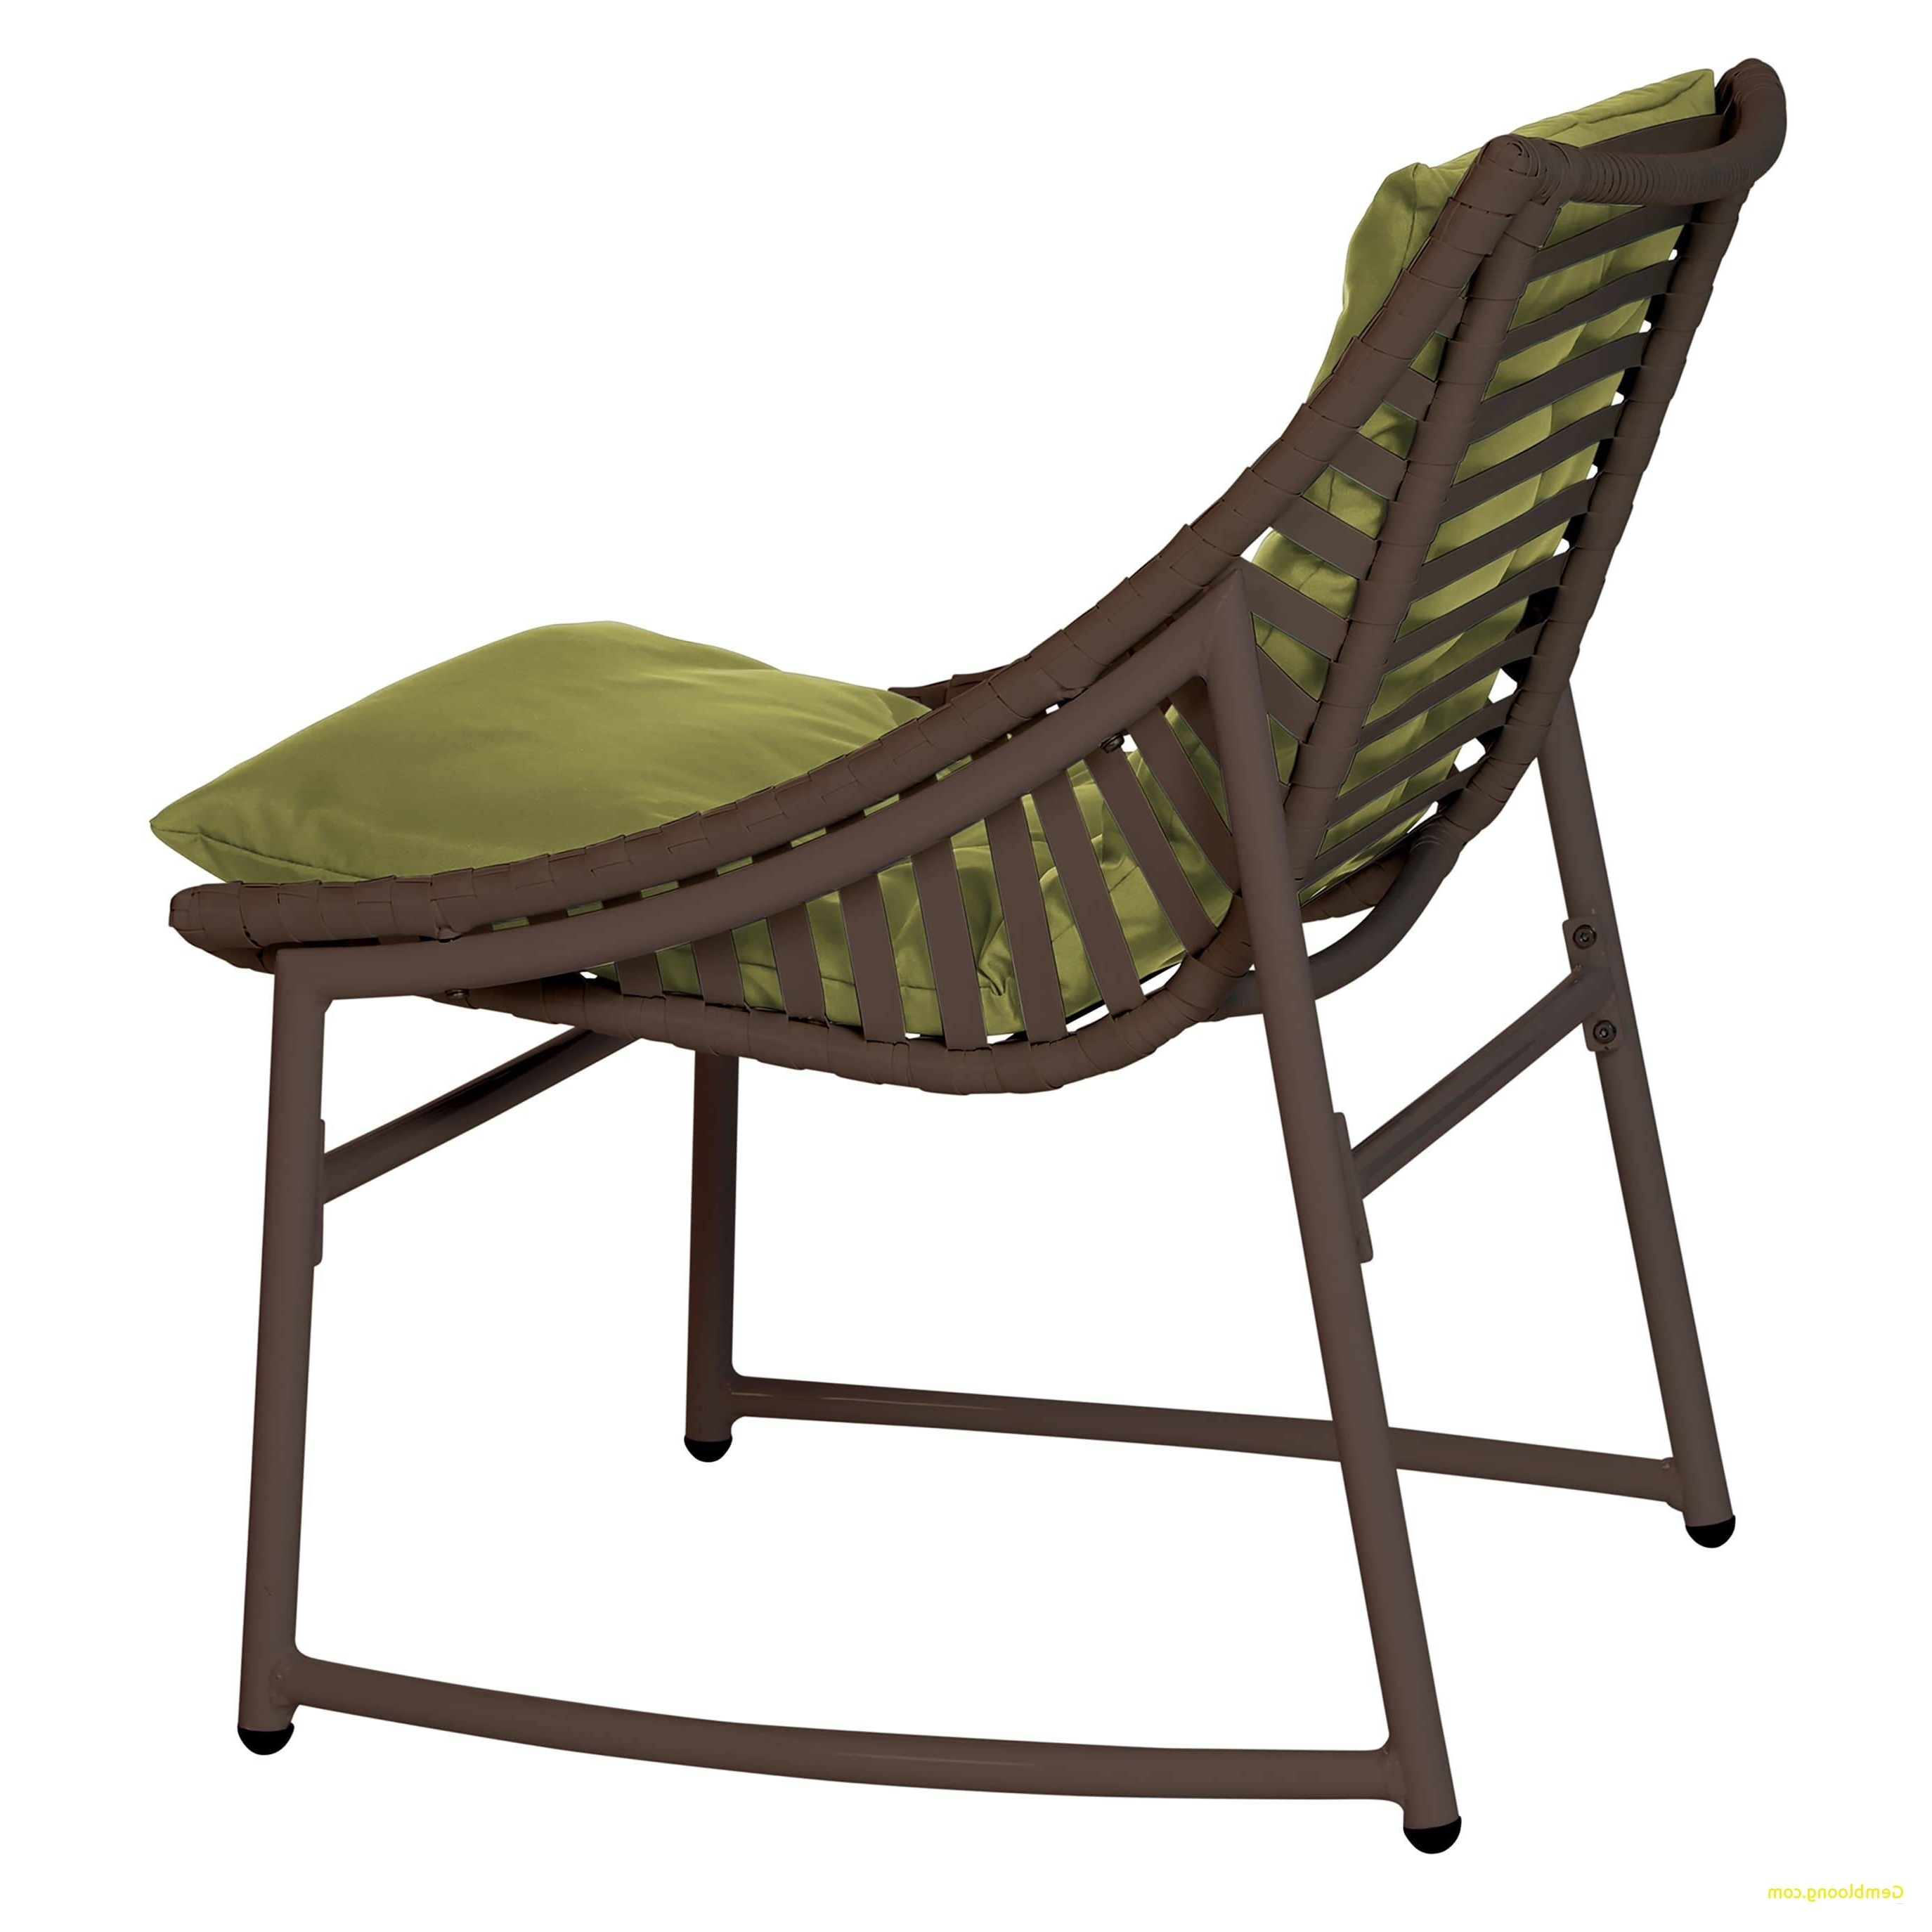 Chair : Patio Rocking Chairs Top Chairs That Spin' S Chair Panton Throughout Popular Patio Rocking Chairs With Ottoman (View 6 of 15)